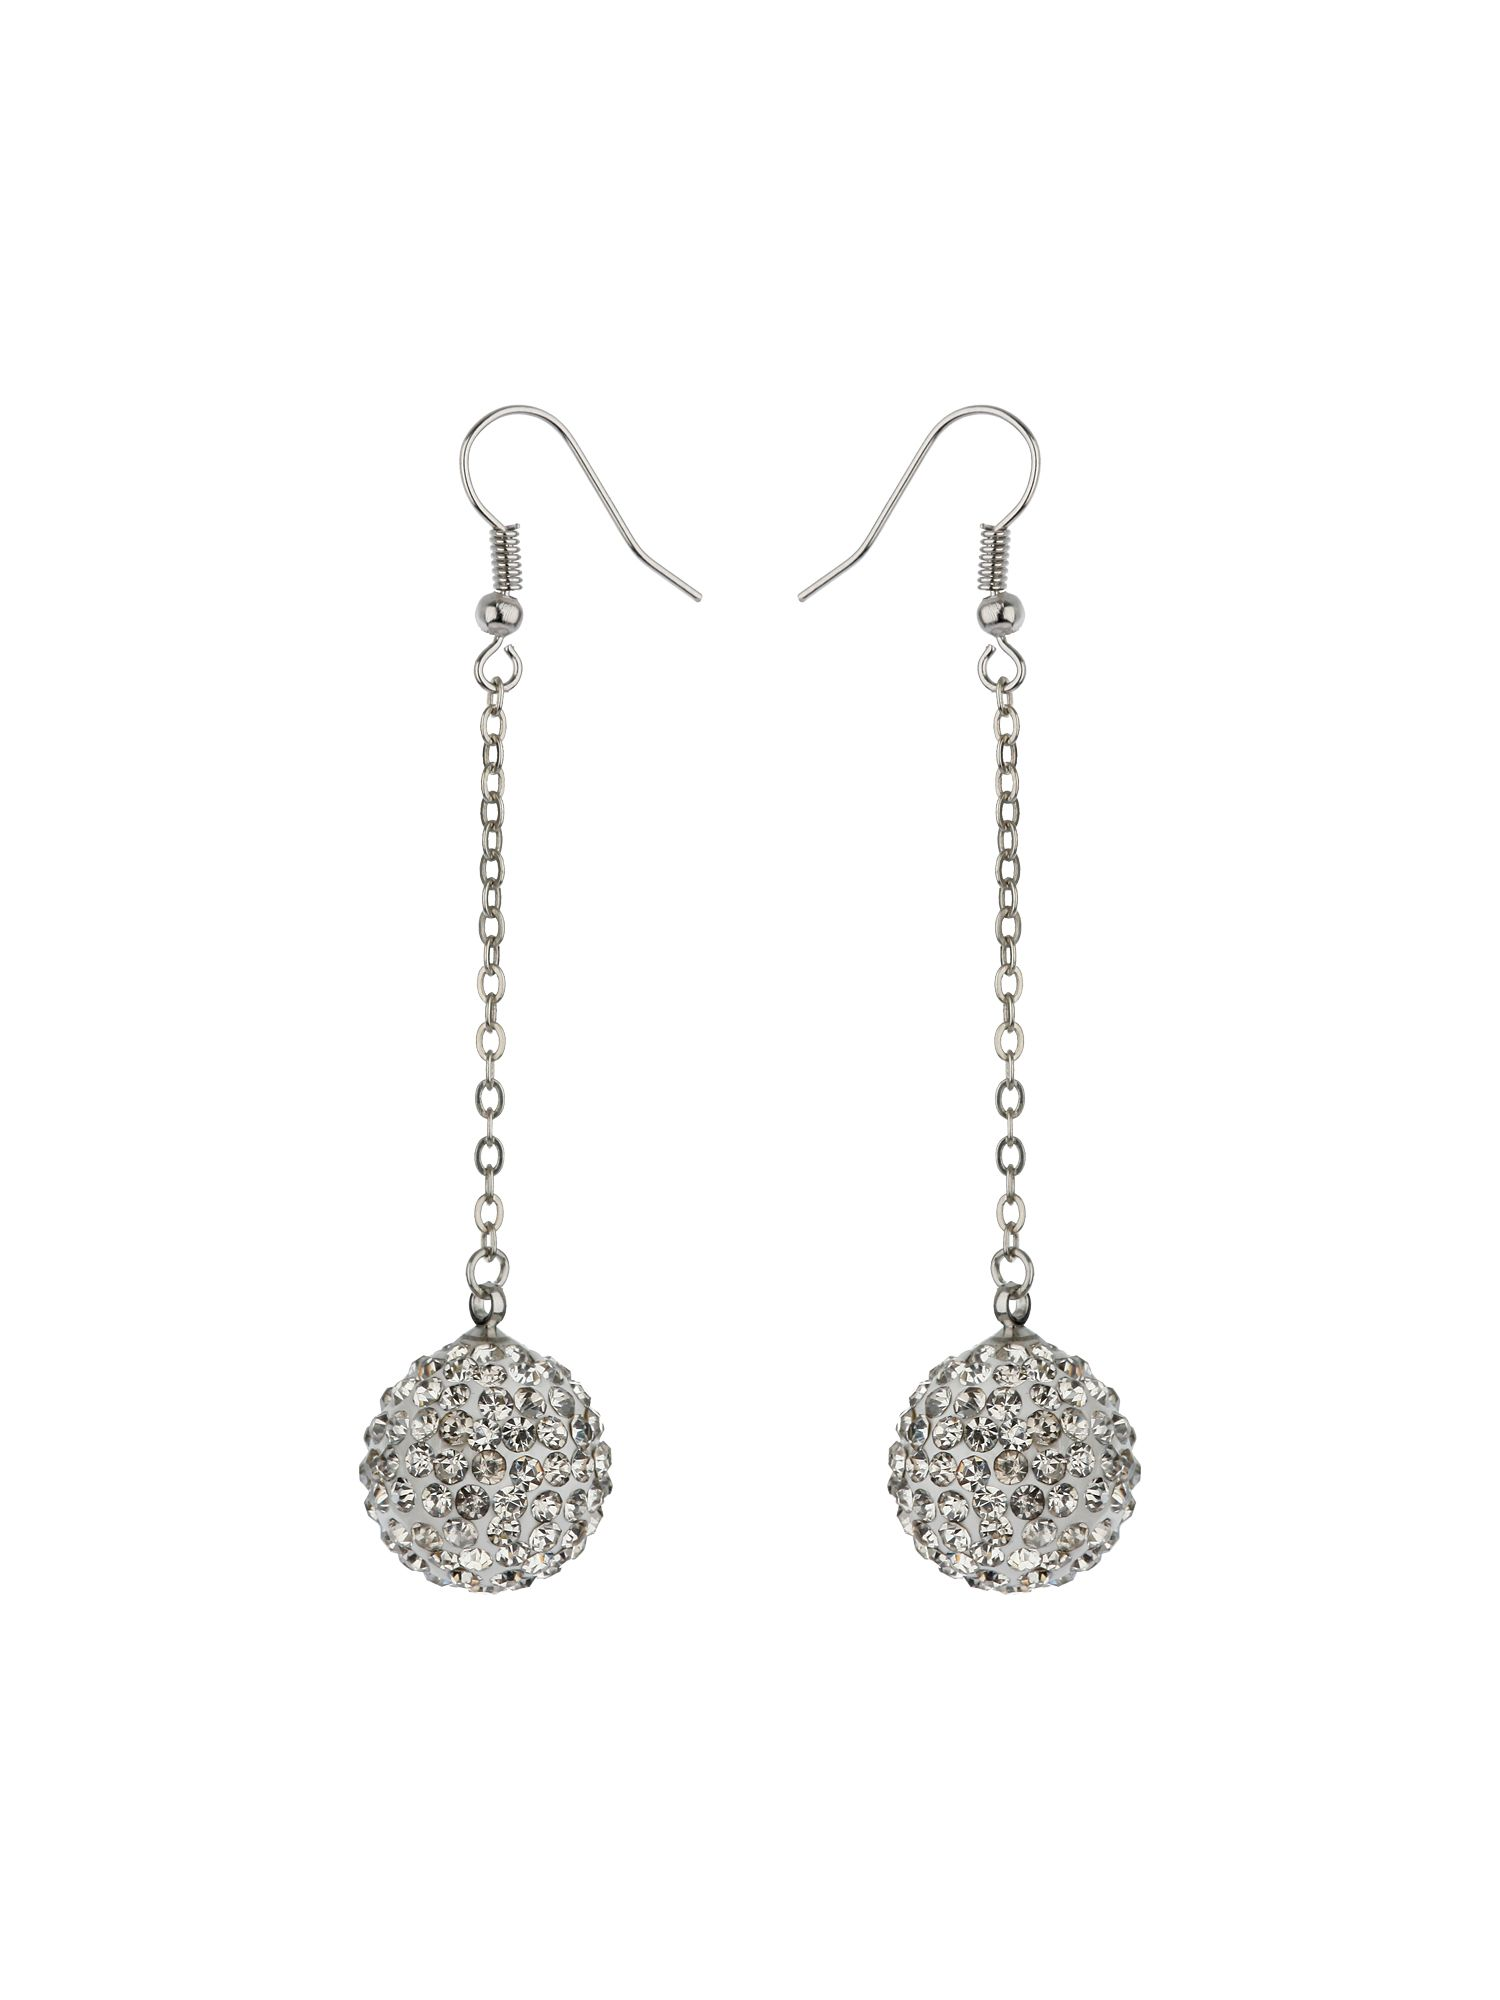 16mm crystal drop earrings